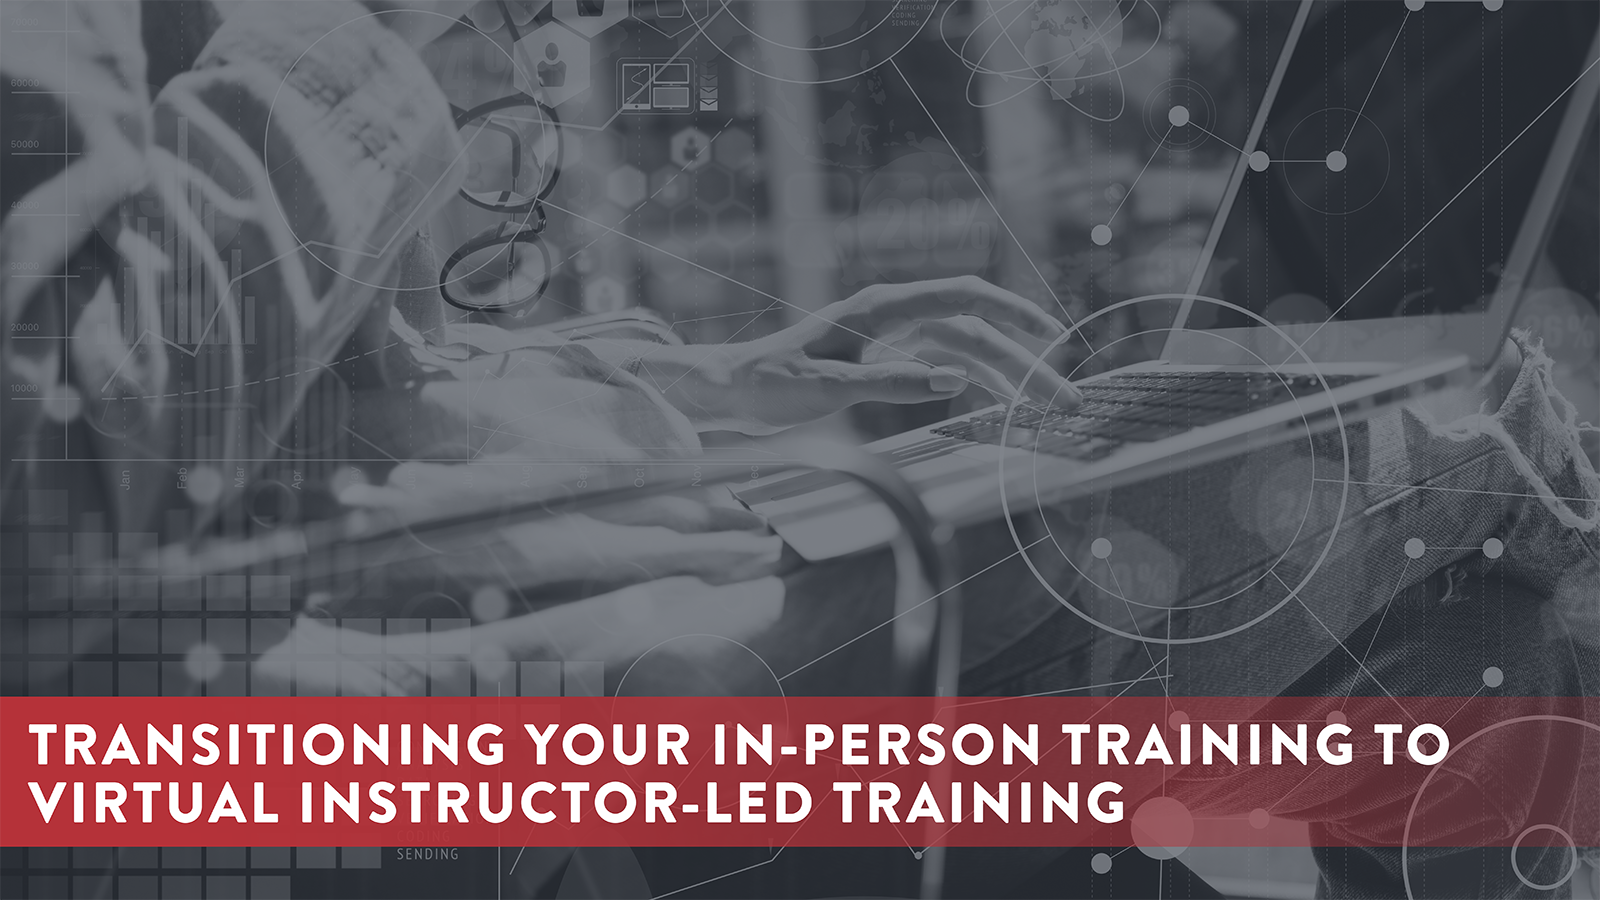 Transitioning Your In-Person Training to Virtual Instructor-Led Training